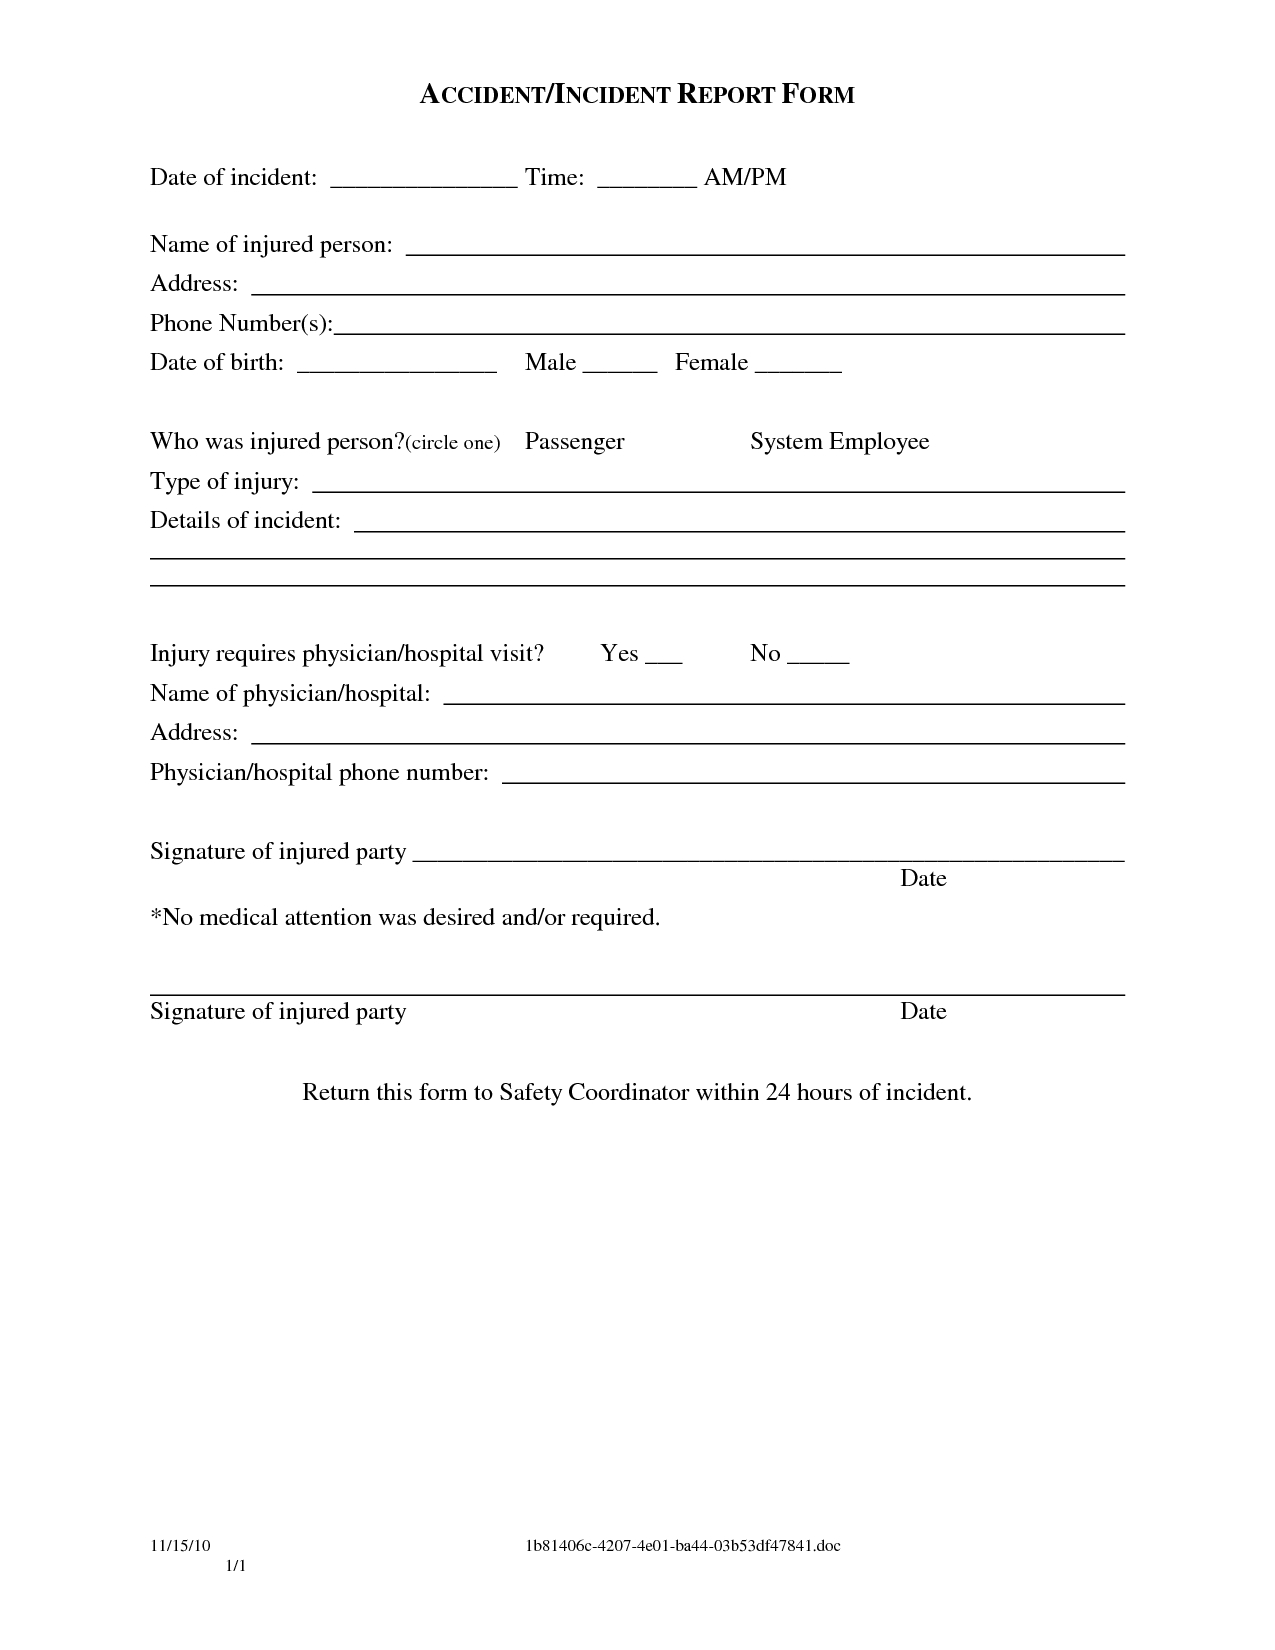 Sample Police Incident Report Template Images - Police For Police Incident Report Template